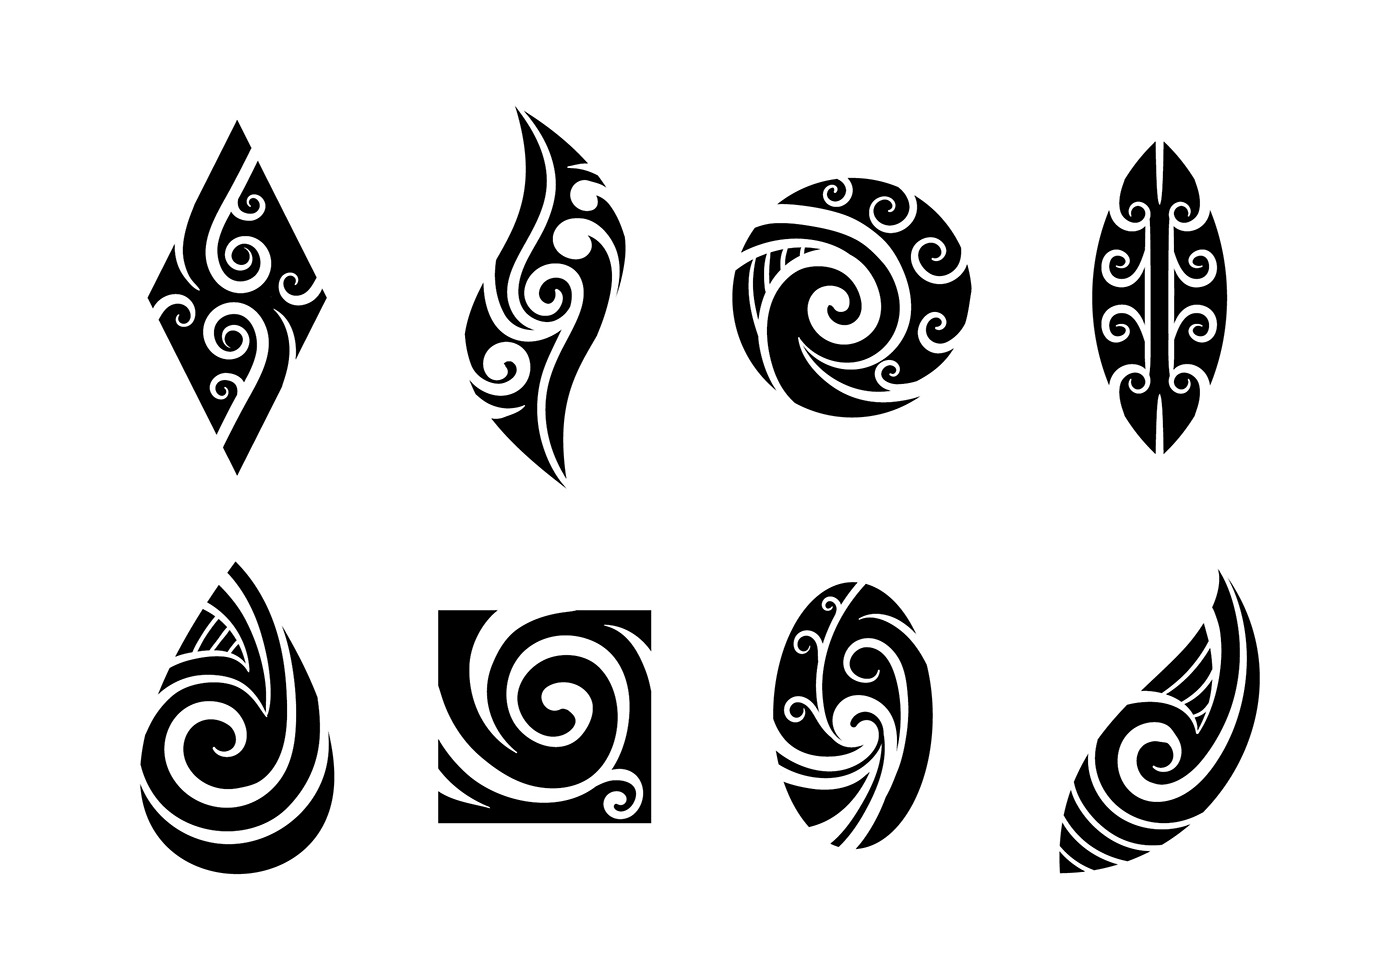 Small Maori Tattoo Designs: Download Free Vectors, Clipart